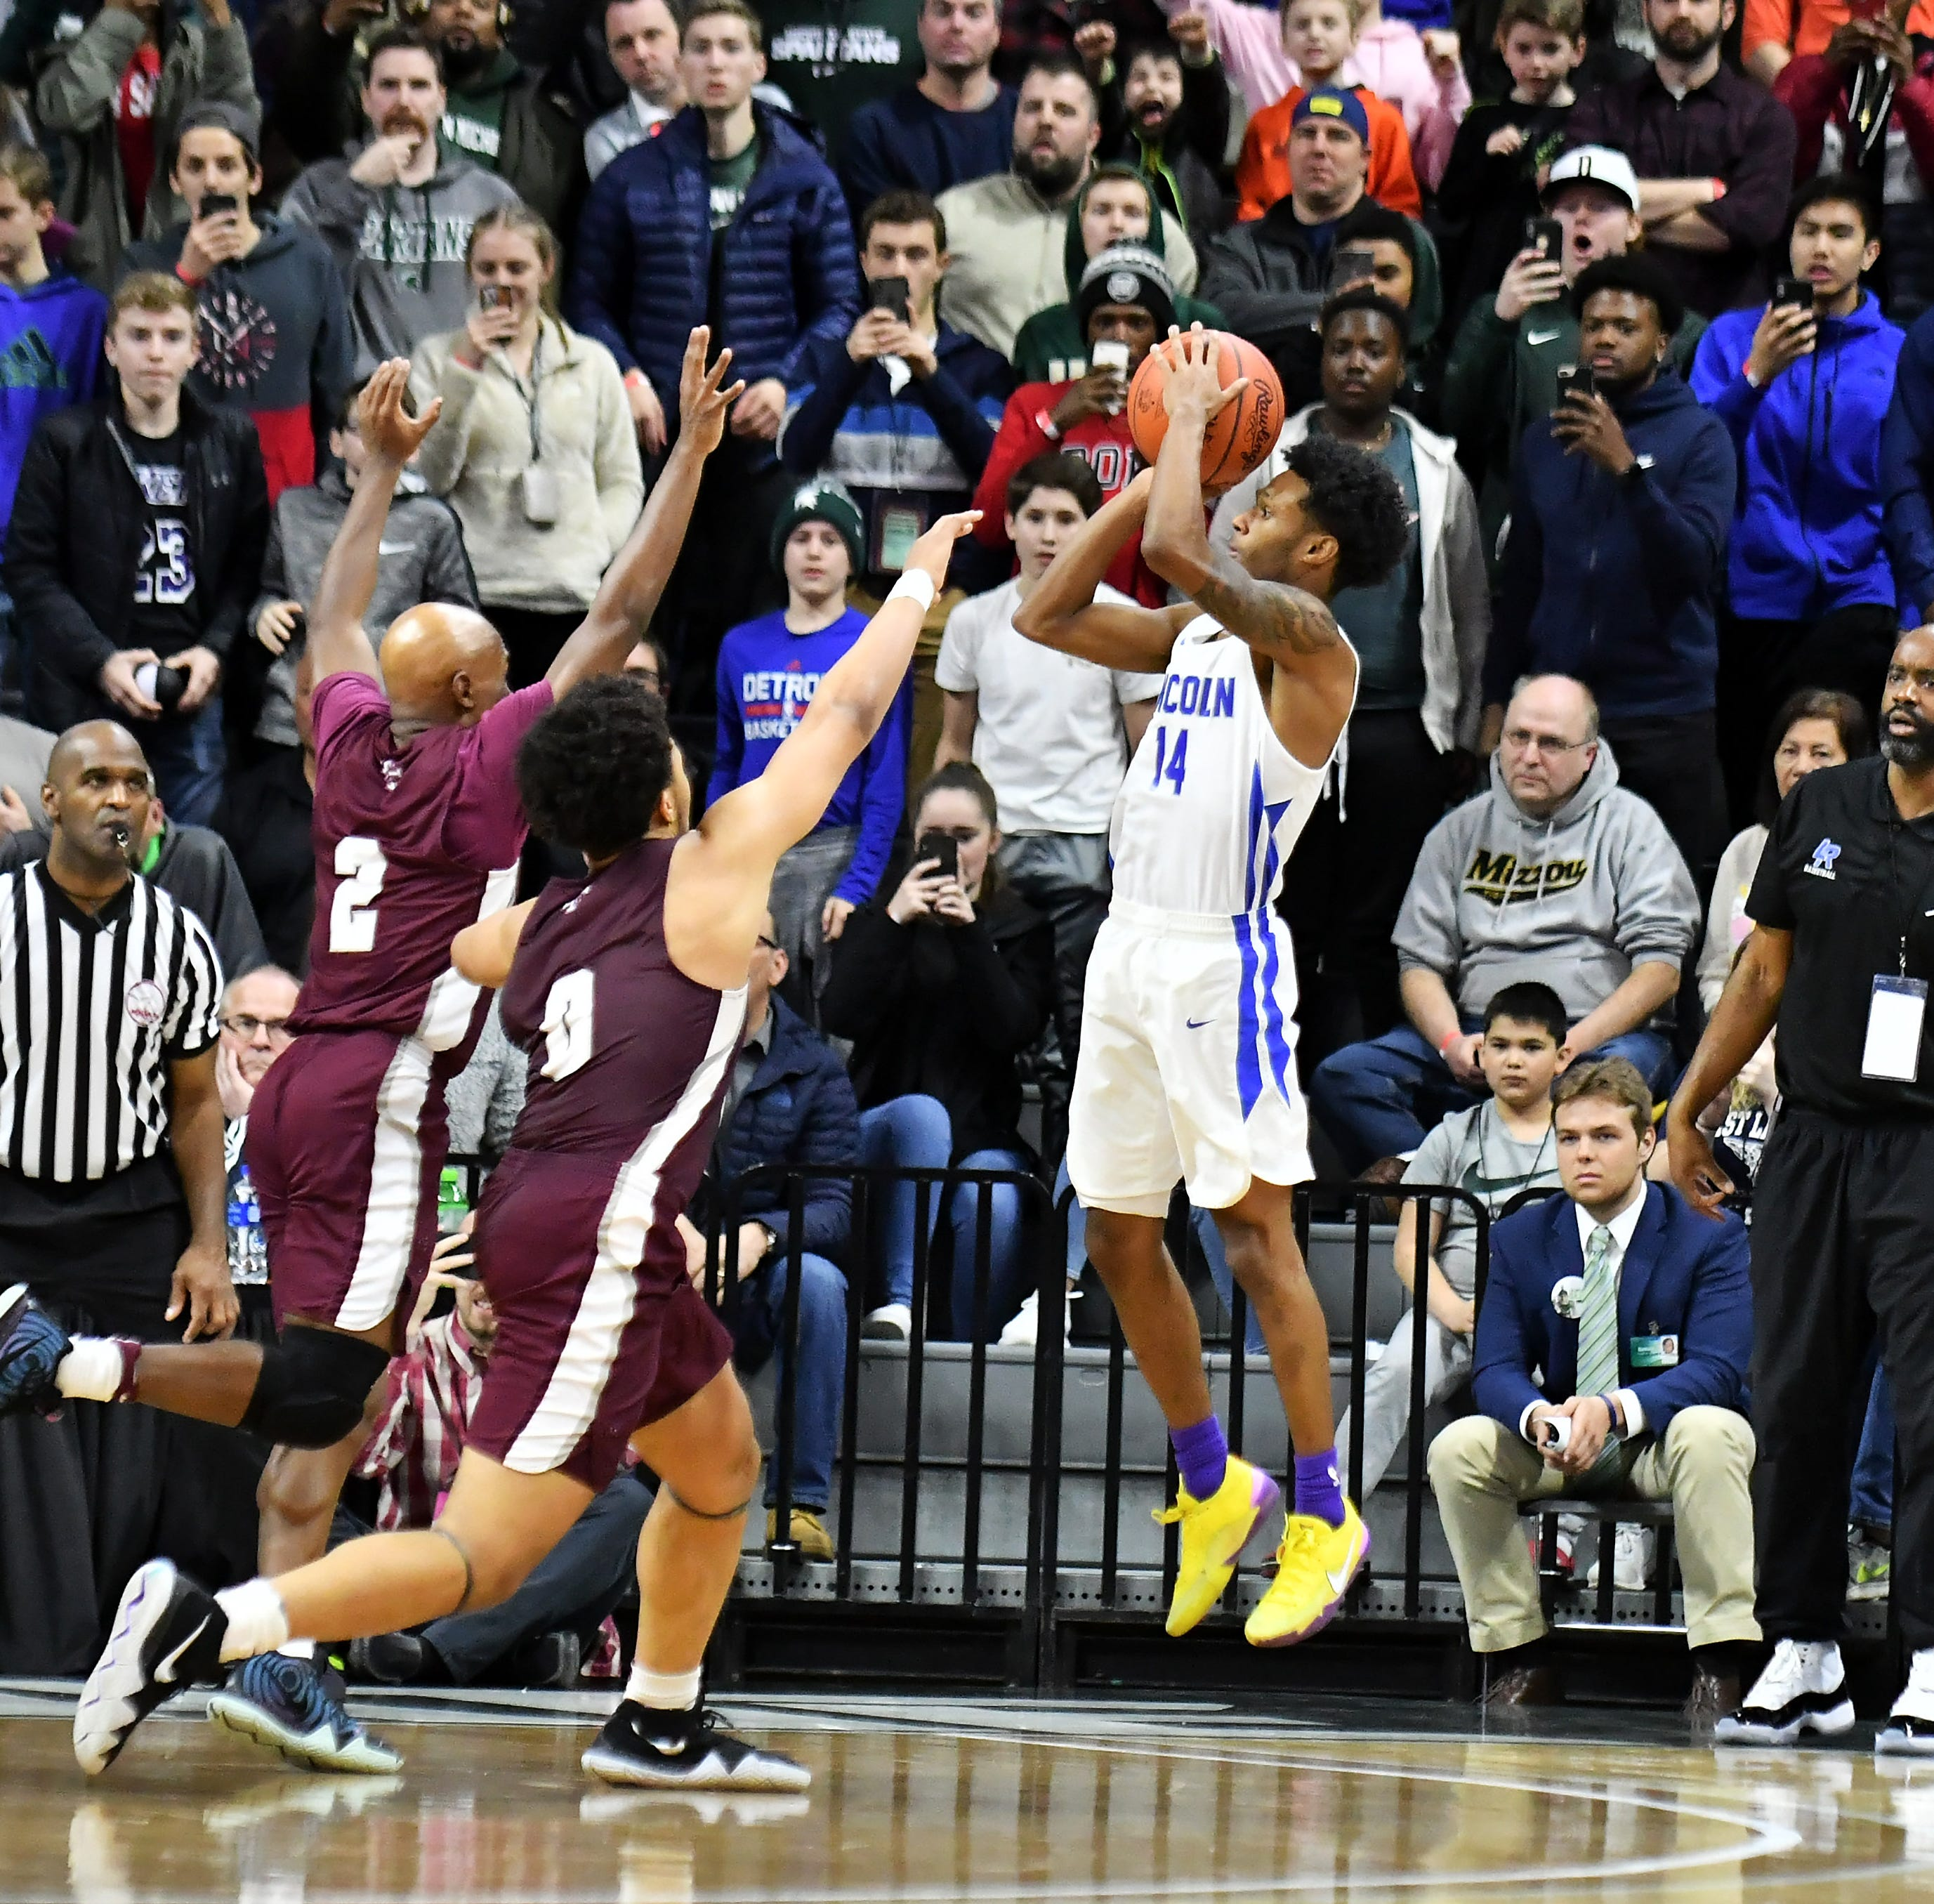 Division 1 final: Ypsilanti Lincoln shocks U-D Jesuit at the buzzer